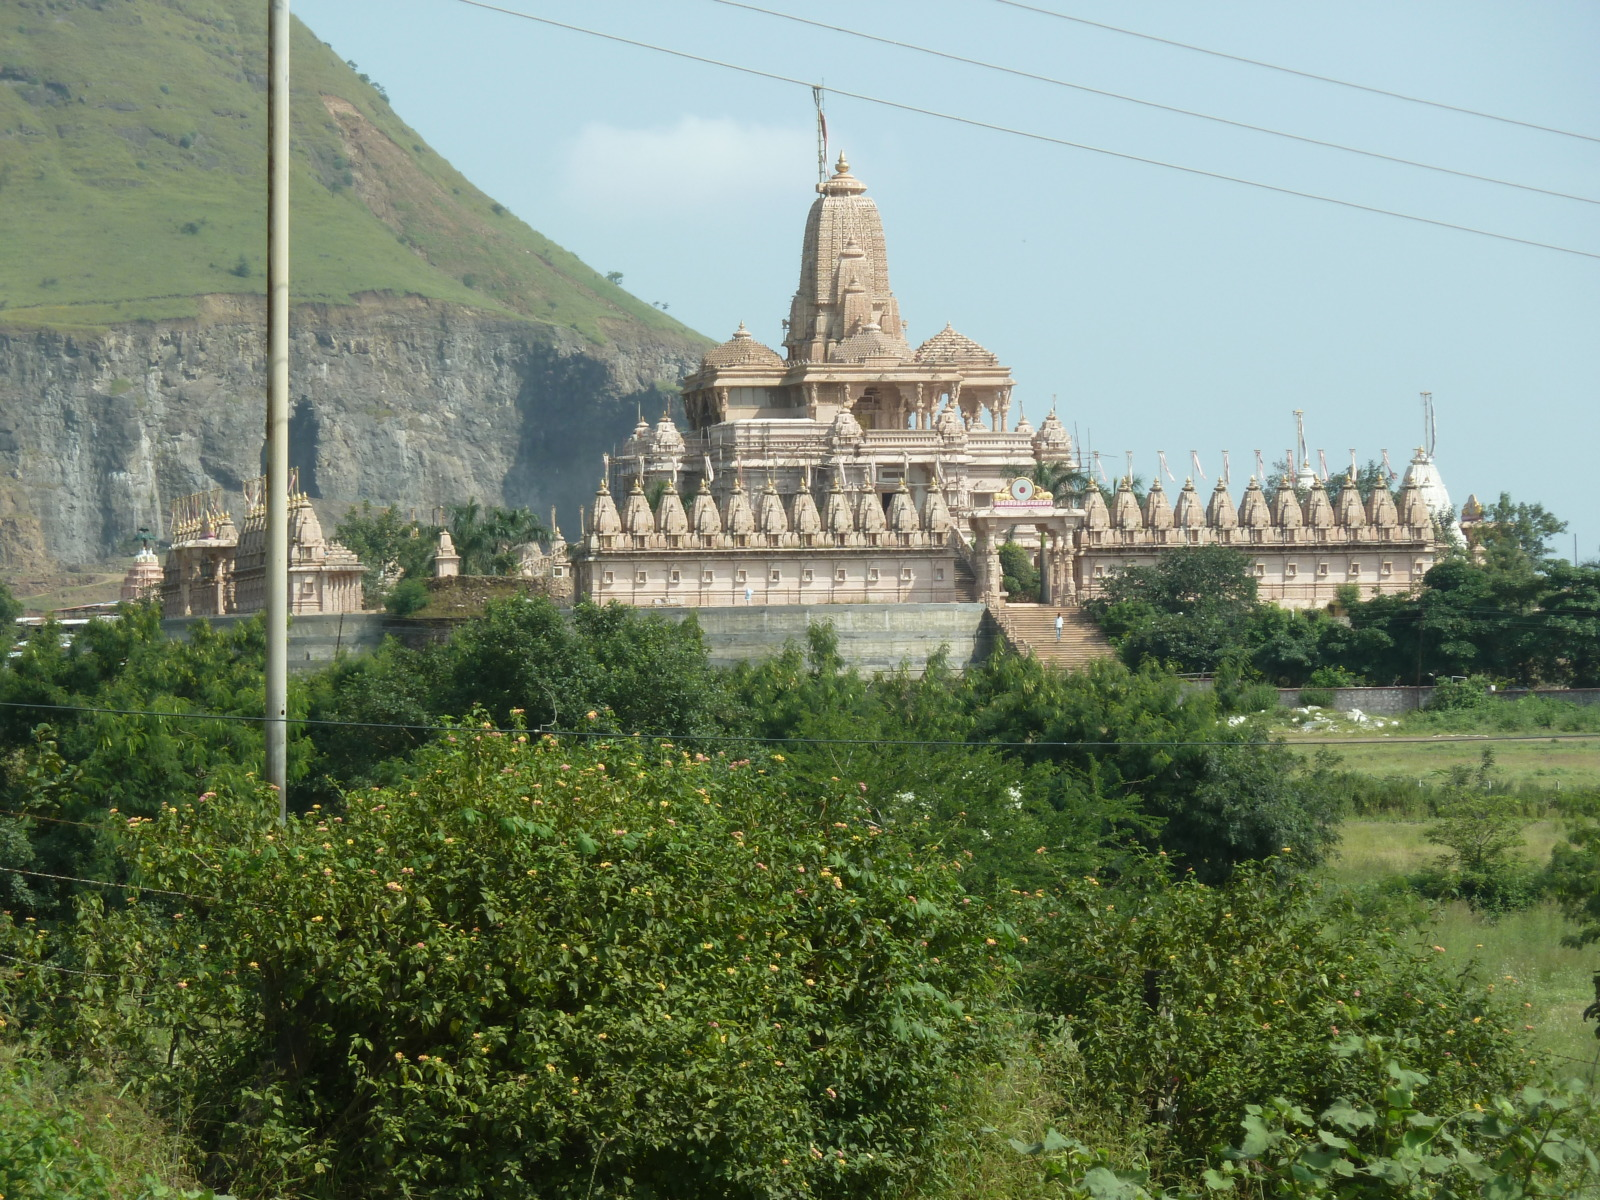 Temple along the road